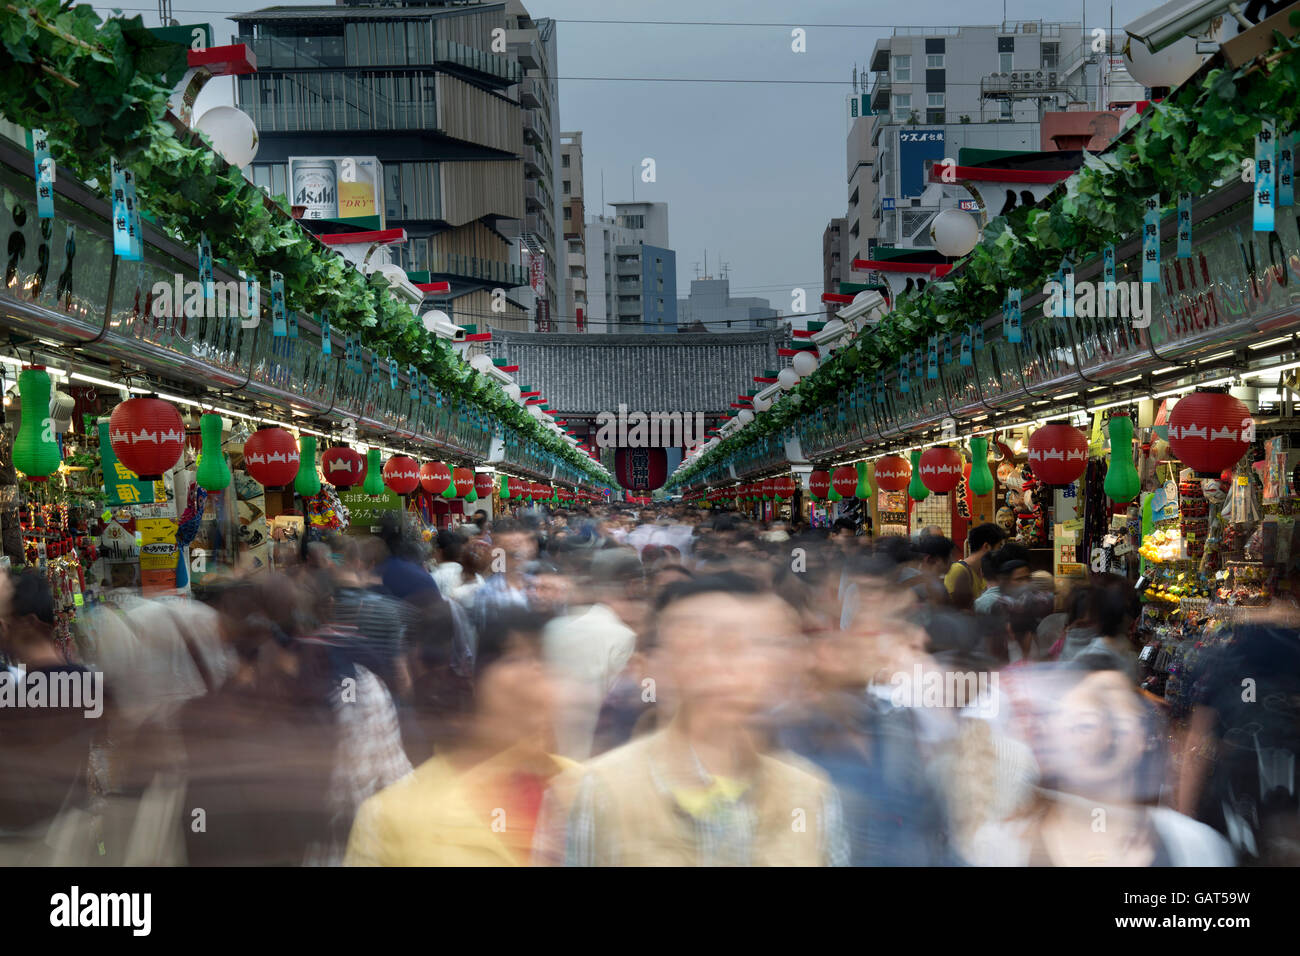 rush of people at a crowded market in tokyo, japan - Stock Image